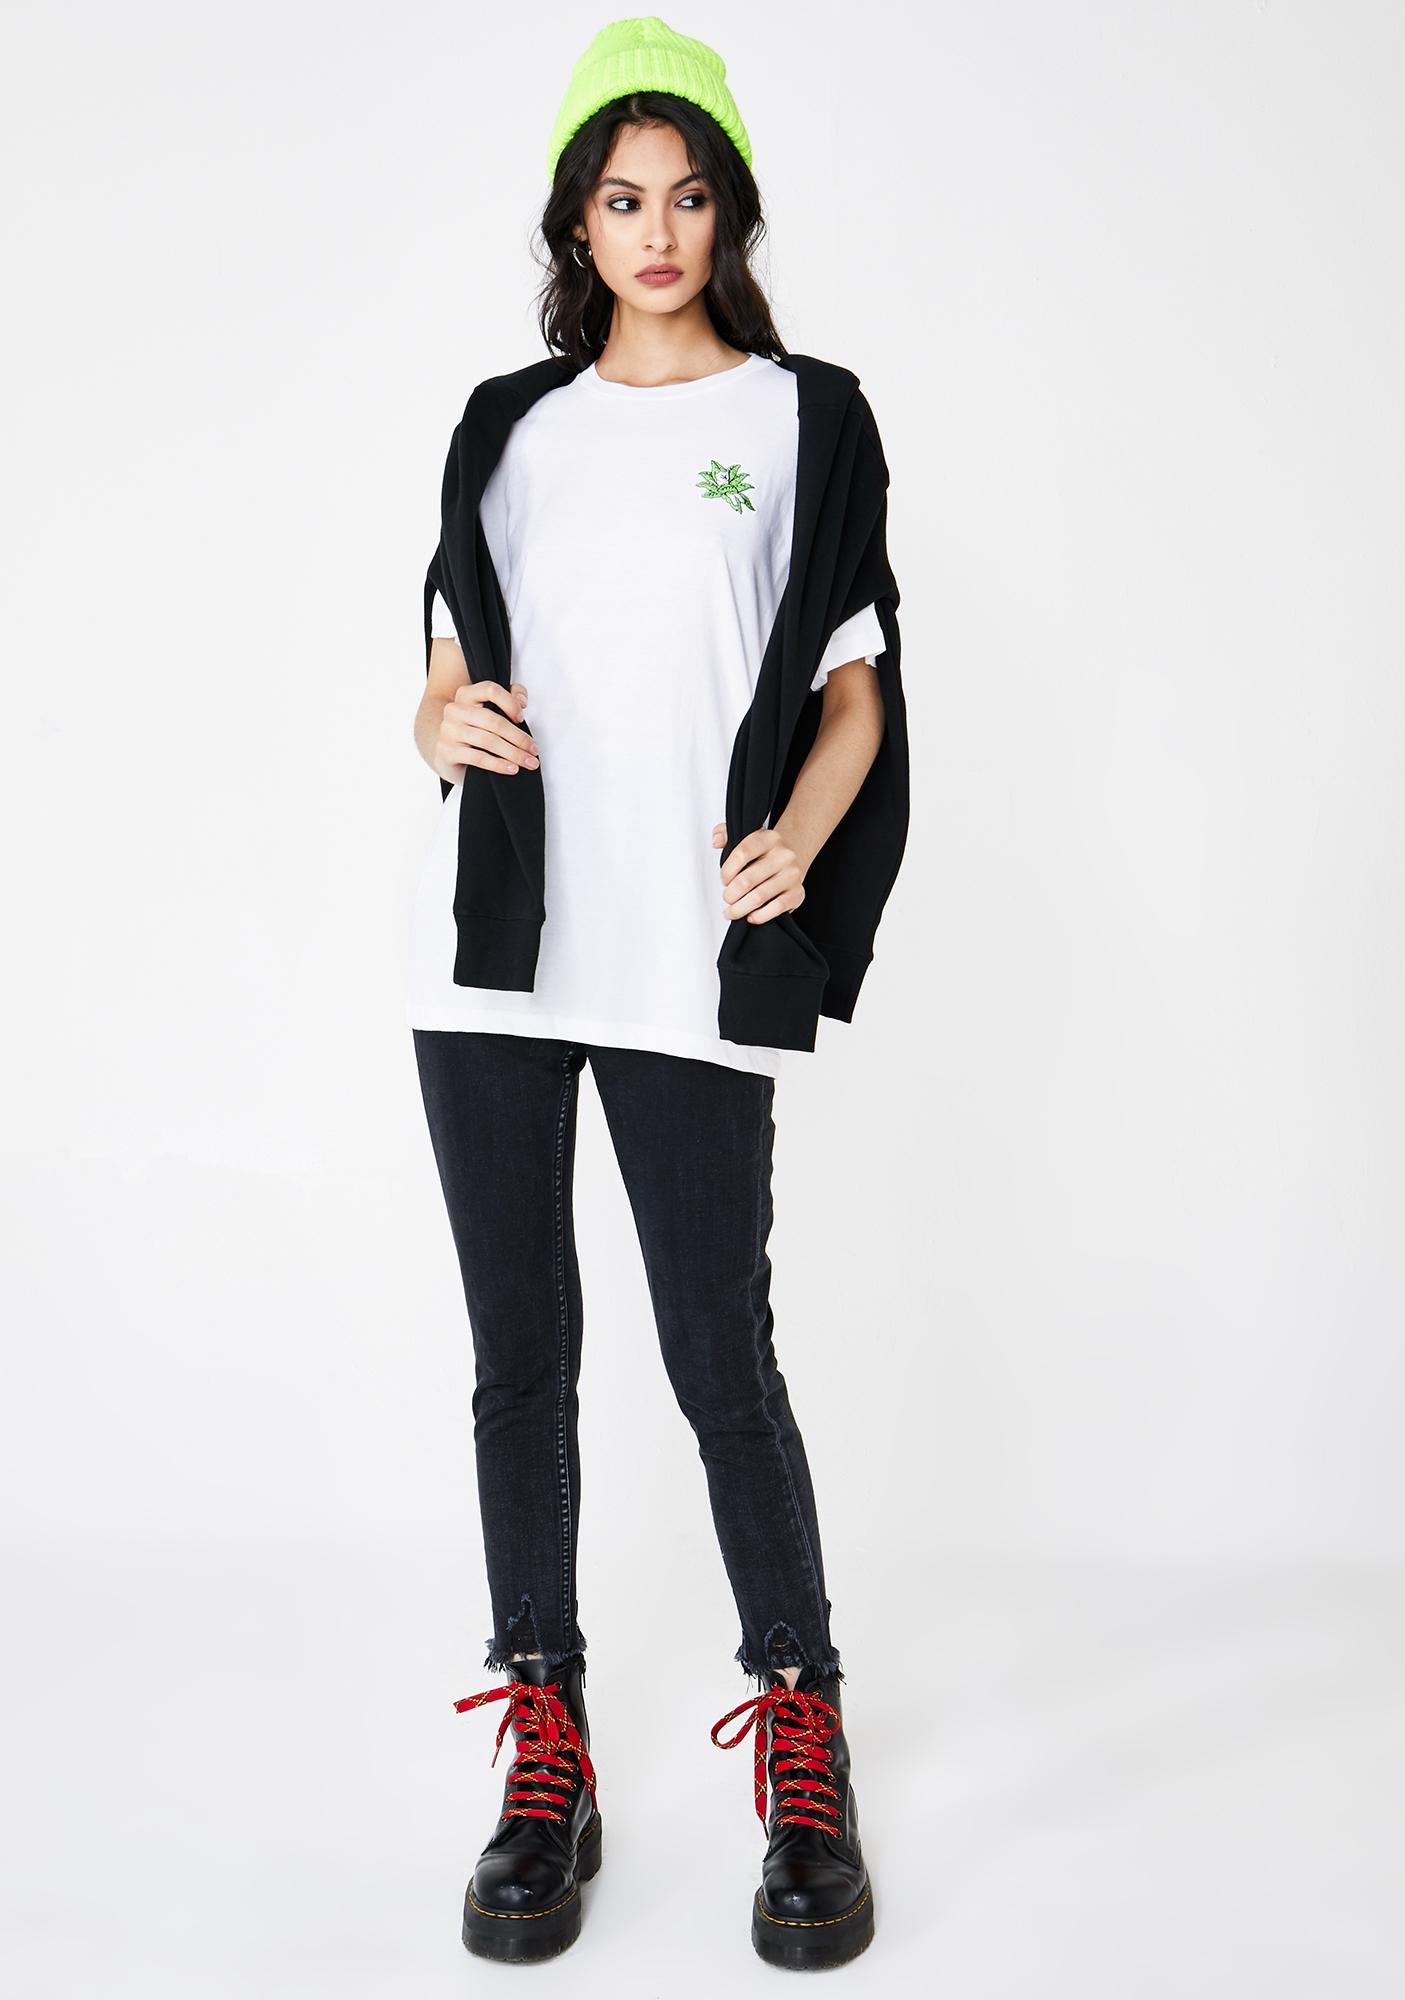 RIPNDIP Tucked In Graphic Tee